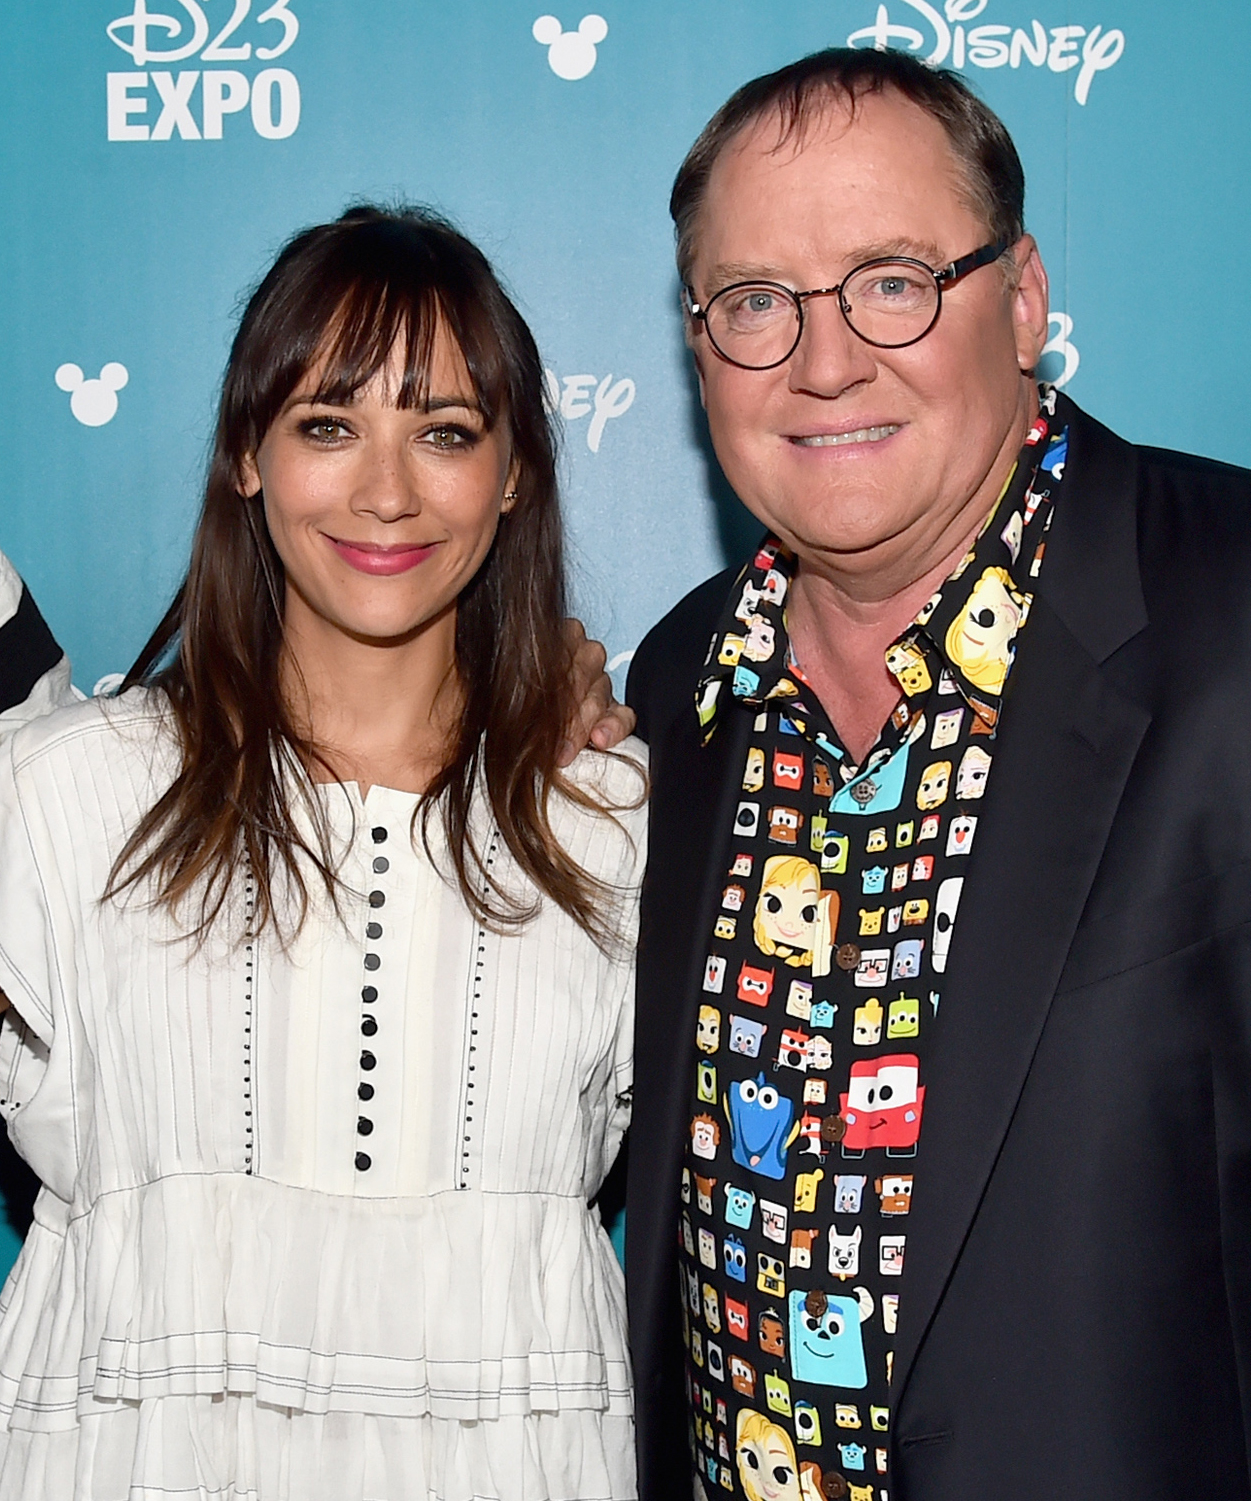 Rashida Jones and John Lasseter